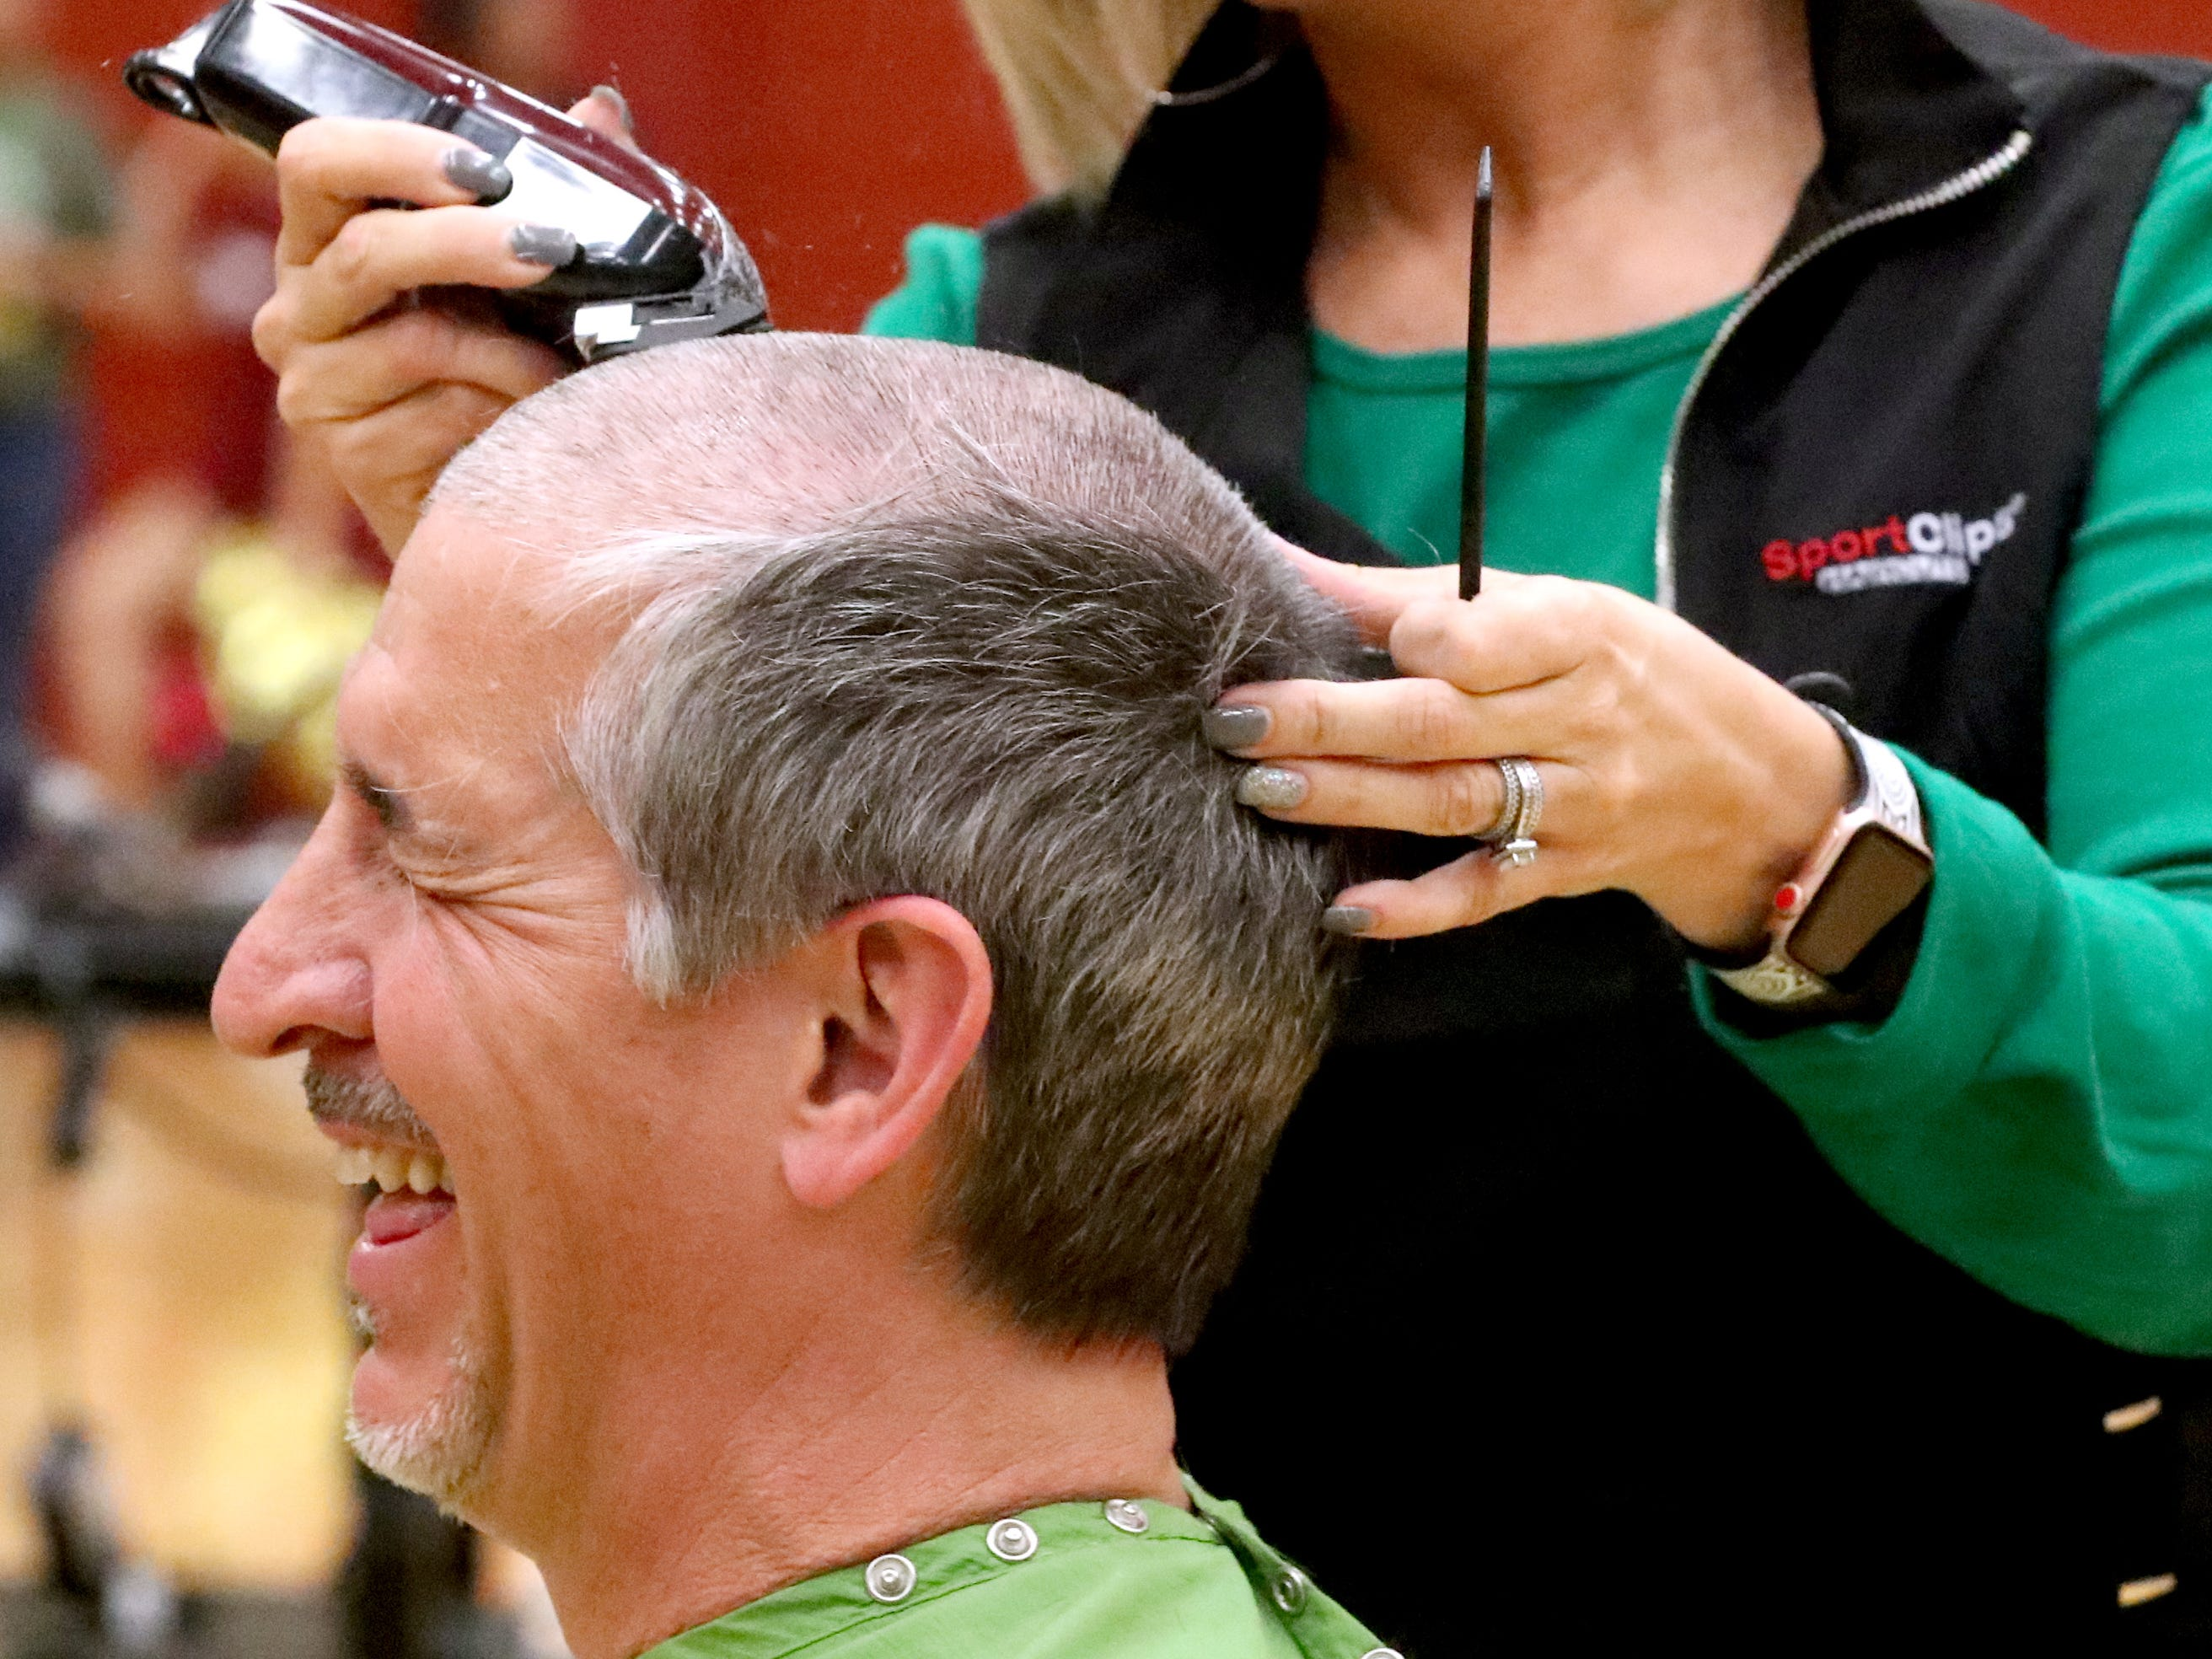 Lamar Davis reacts as she gets her head shaved during Riverdale High School's sixth annual Brave the Shave fundraiser to benefit St. Baldrick's Foundation on Thursday, March 21, 2019. The organization raises funds and awareness for childhood cancer.